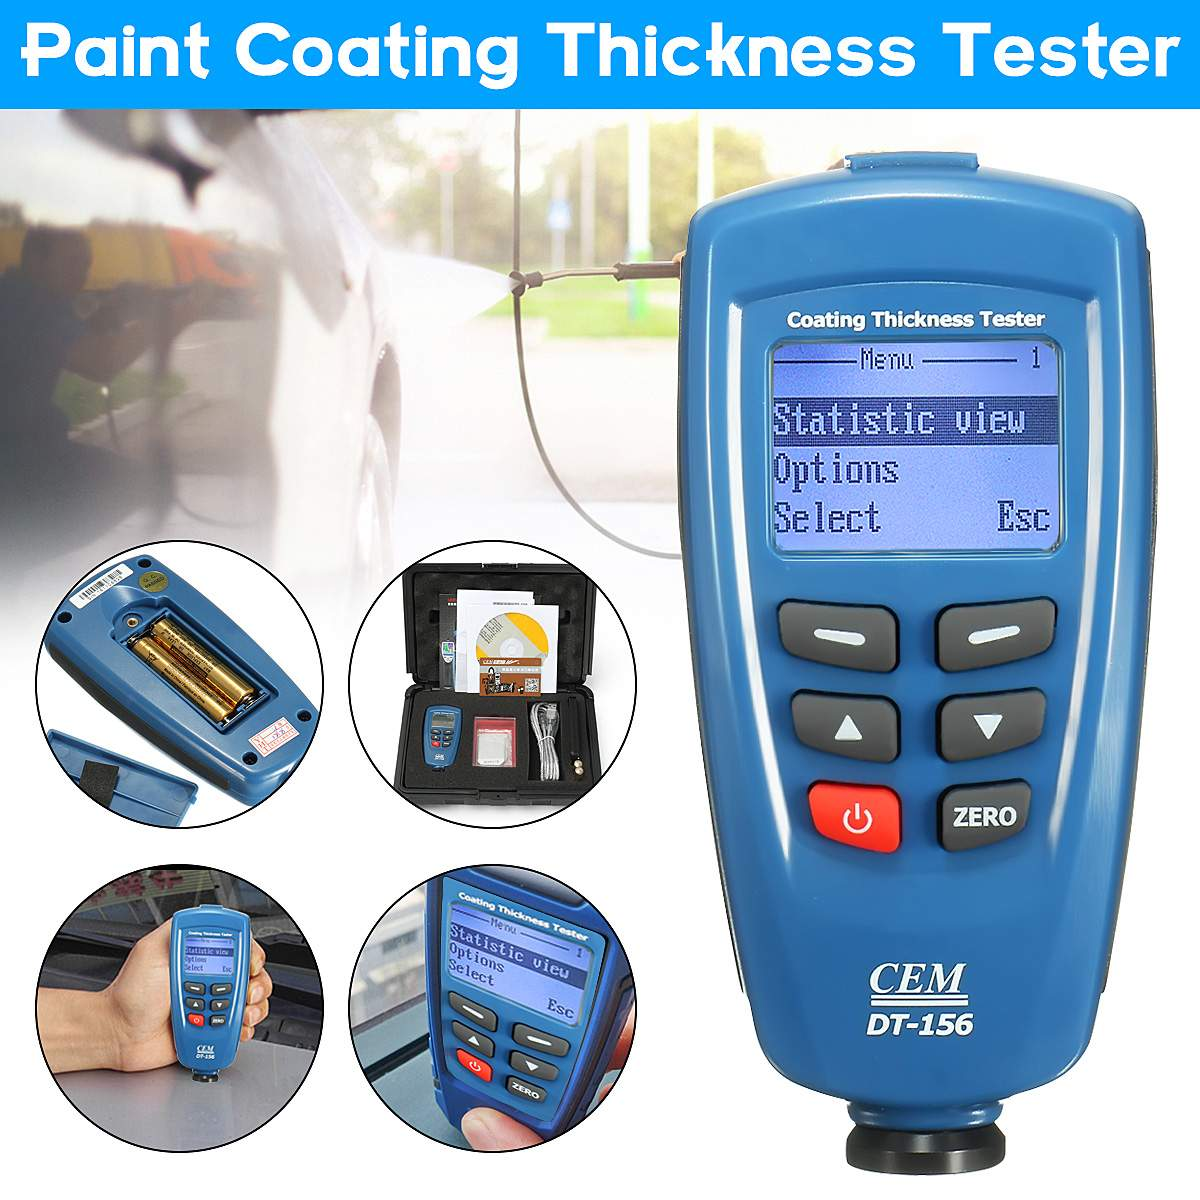 Digital CEM DT-156 Paint Coating Thickness Gauge Meter Tester 0~1250um with Built-in Auto F & NF Probe + USB Cable + CD softwareDigital CEM DT-156 Paint Coating Thickness Gauge Meter Tester 0~1250um with Built-in Auto F & NF Probe + USB Cable + CD software